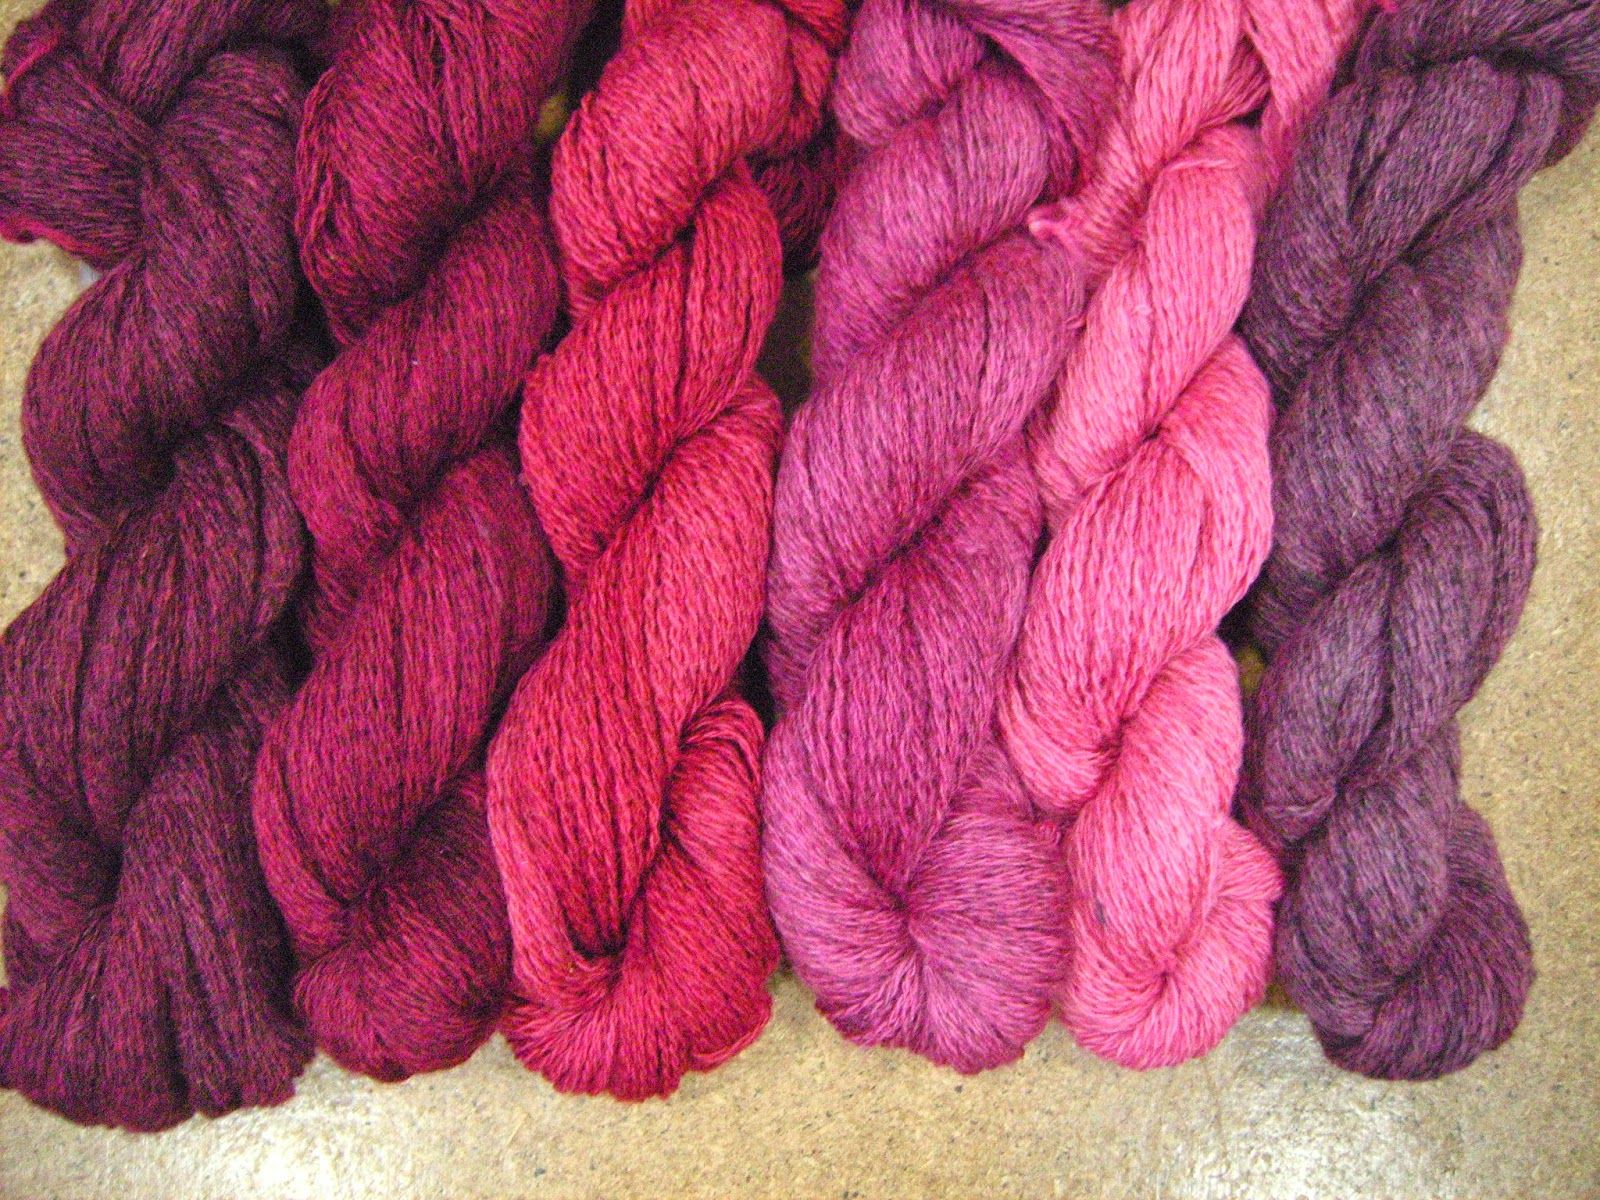 Cochineal and Logwood Natural dye fabric, How to dye